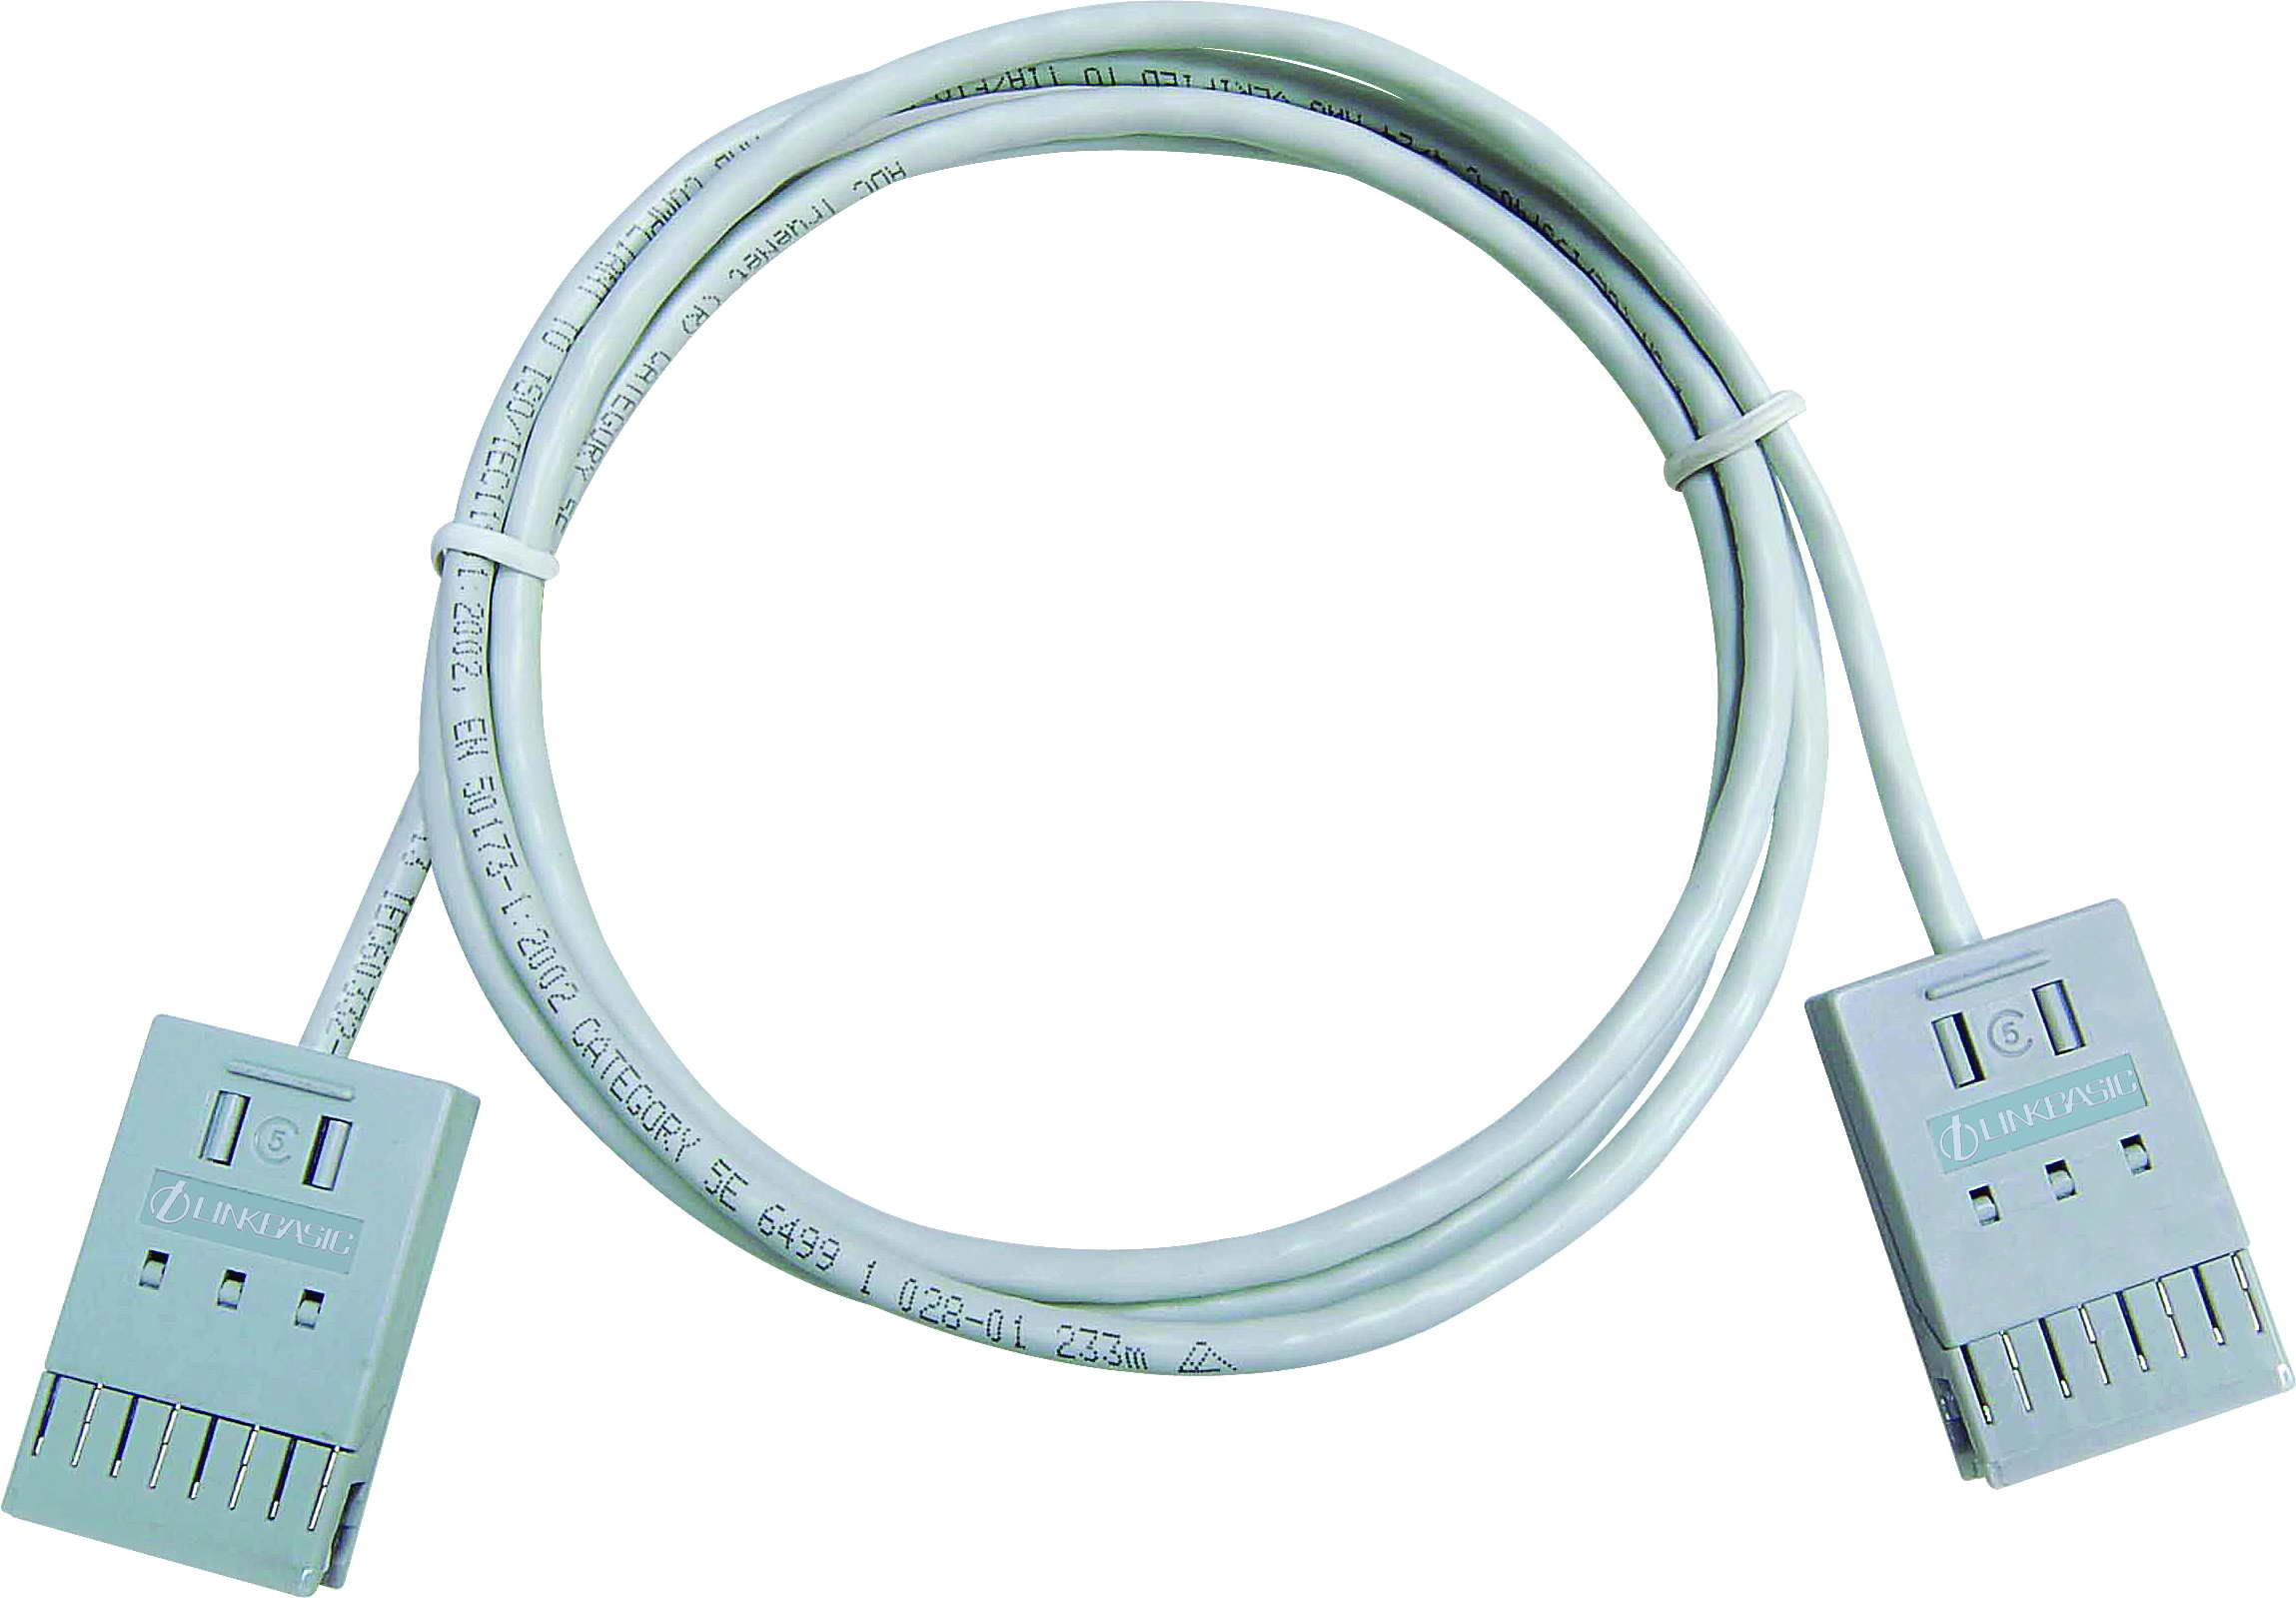 Rj11 To Rj45 Patch Cable China 110 Style Four